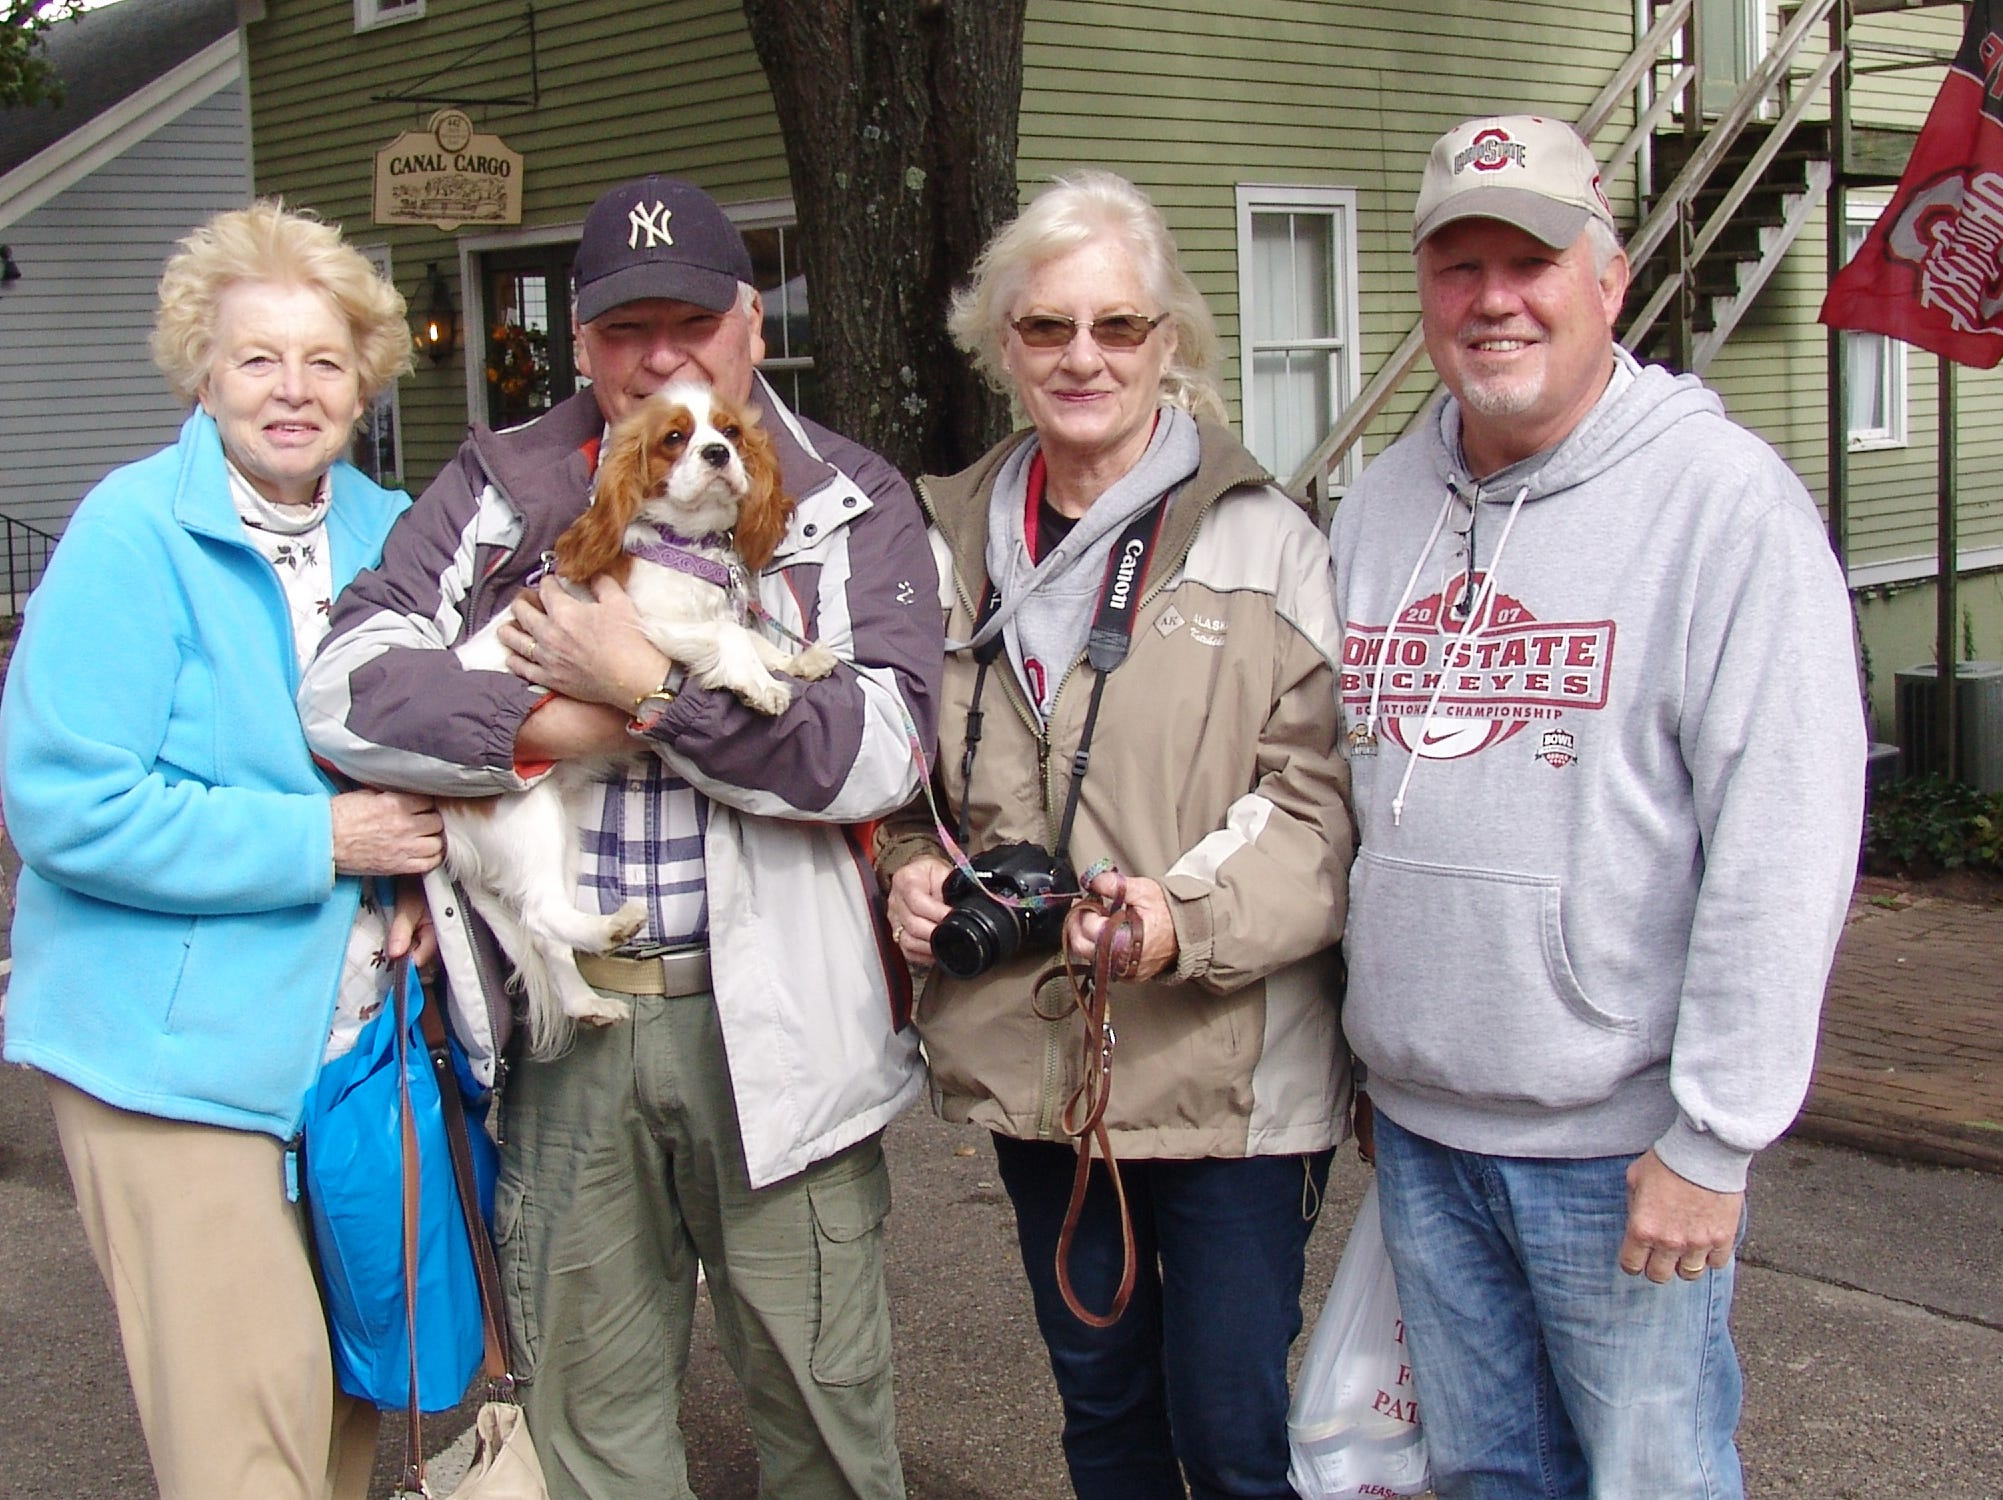 Barbara Kelly, Jerry and Gracie Kelly, Sharon Ashbaugh and Richard Ashbaugh pose for a photo during the Apple Butter Stirrin' Festival.